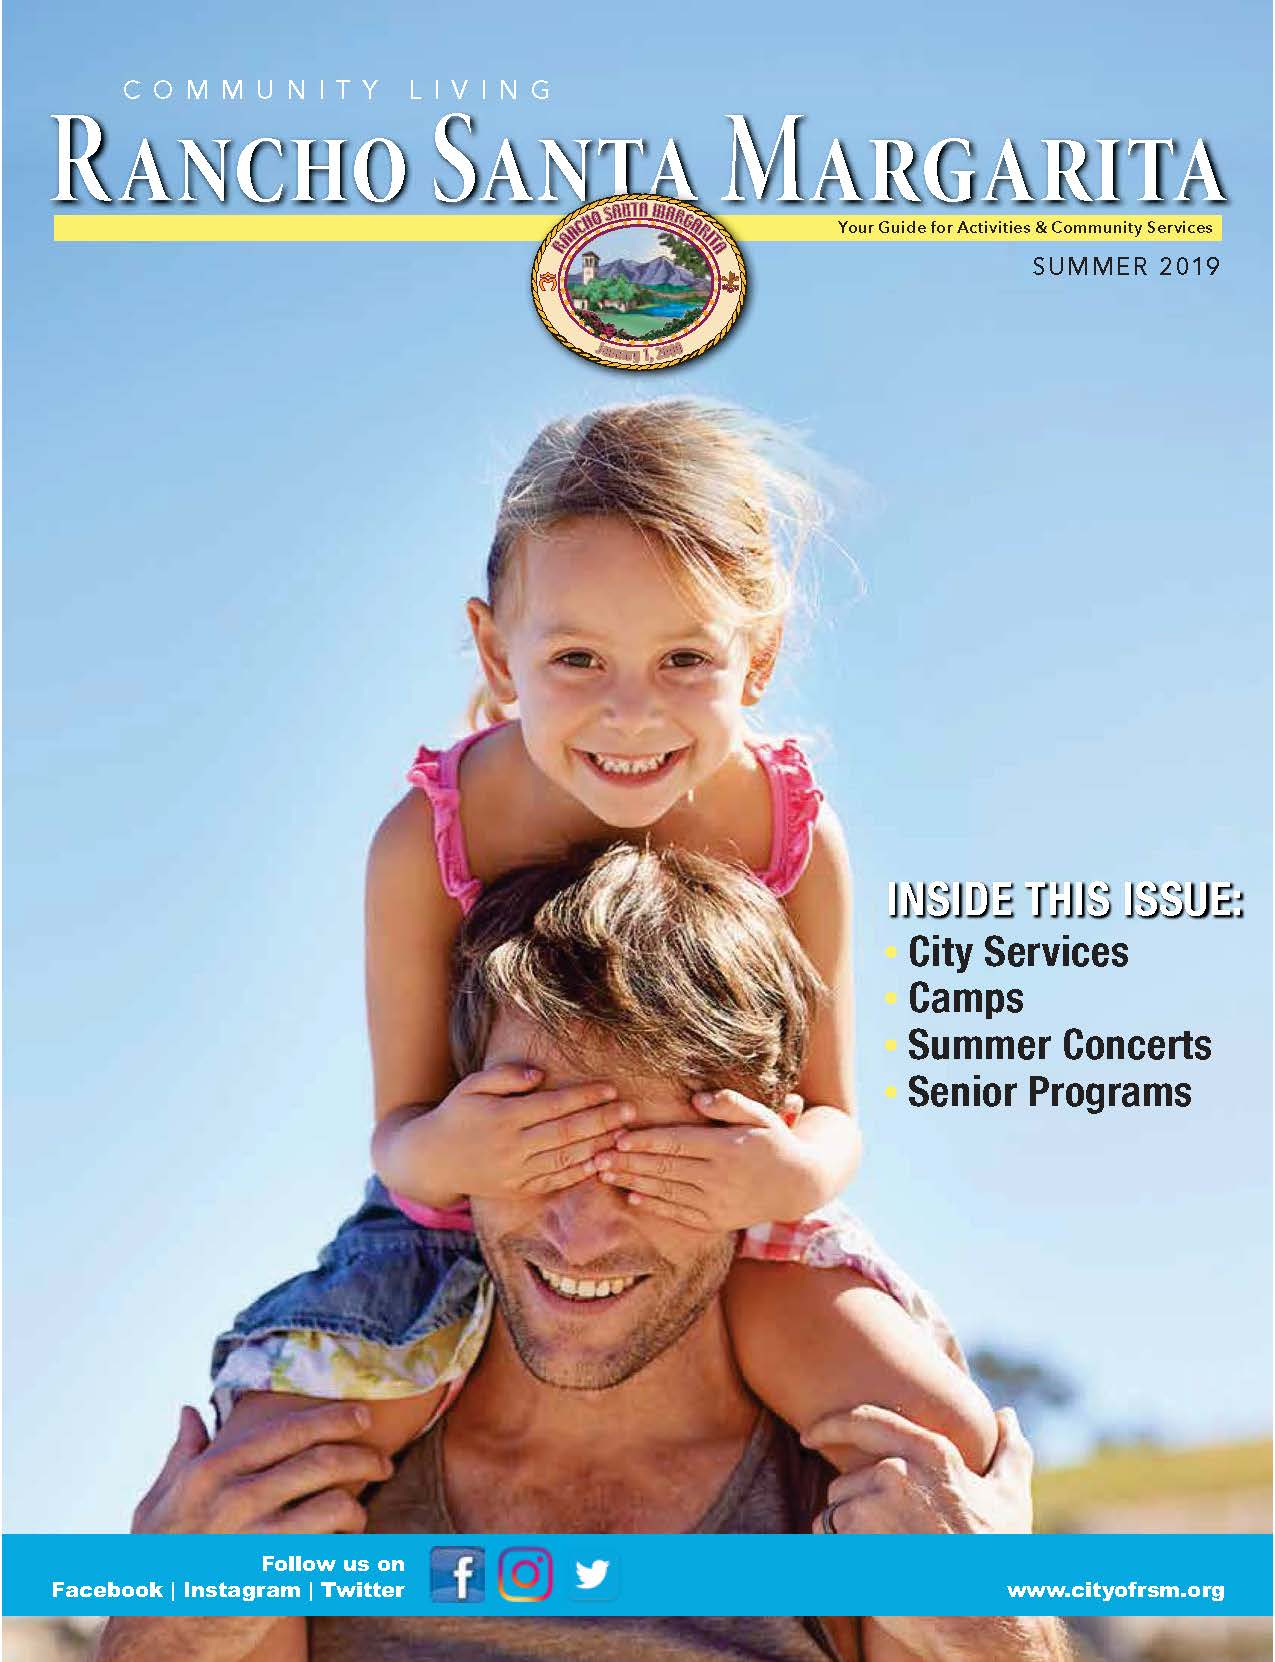 RSM Summer 2019 Community Living Magazine Cover